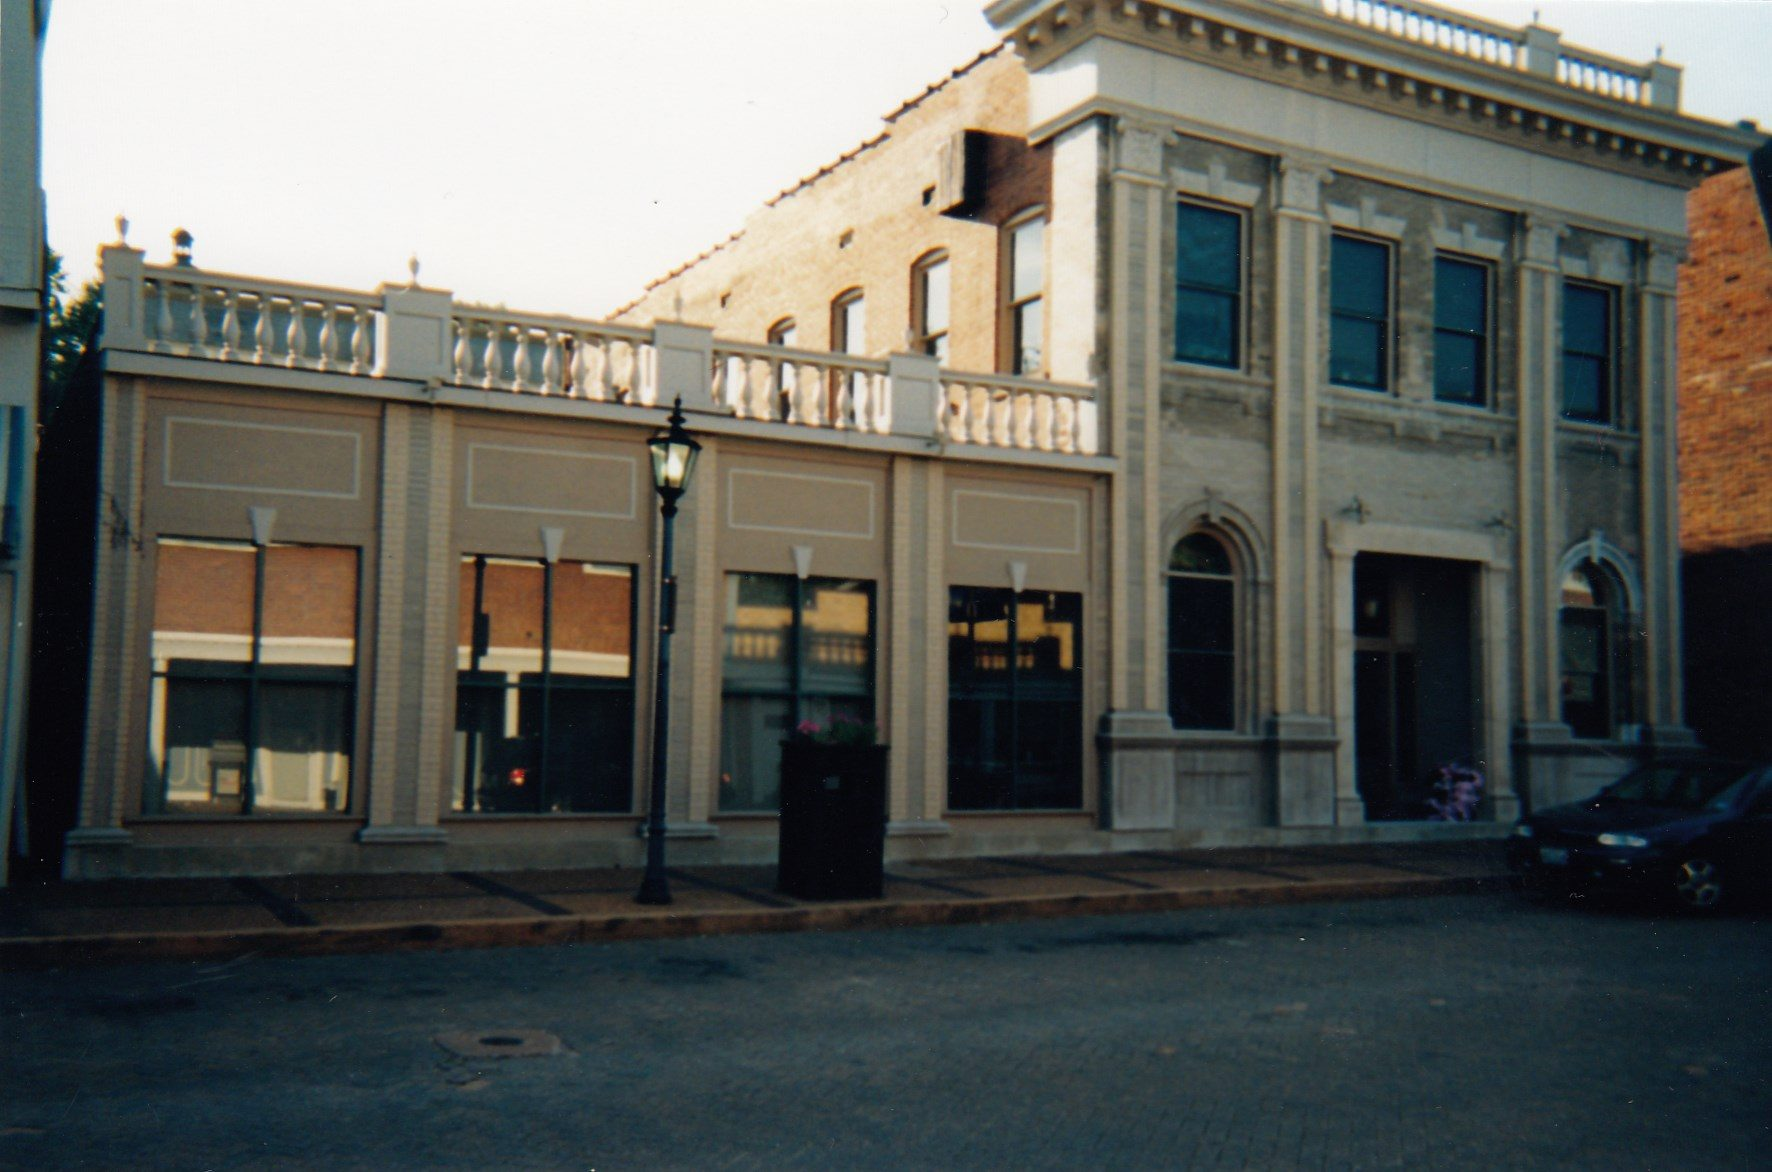 2001: A previous First State Bank branch located at 121 N. Main Street, St. Charles, MO